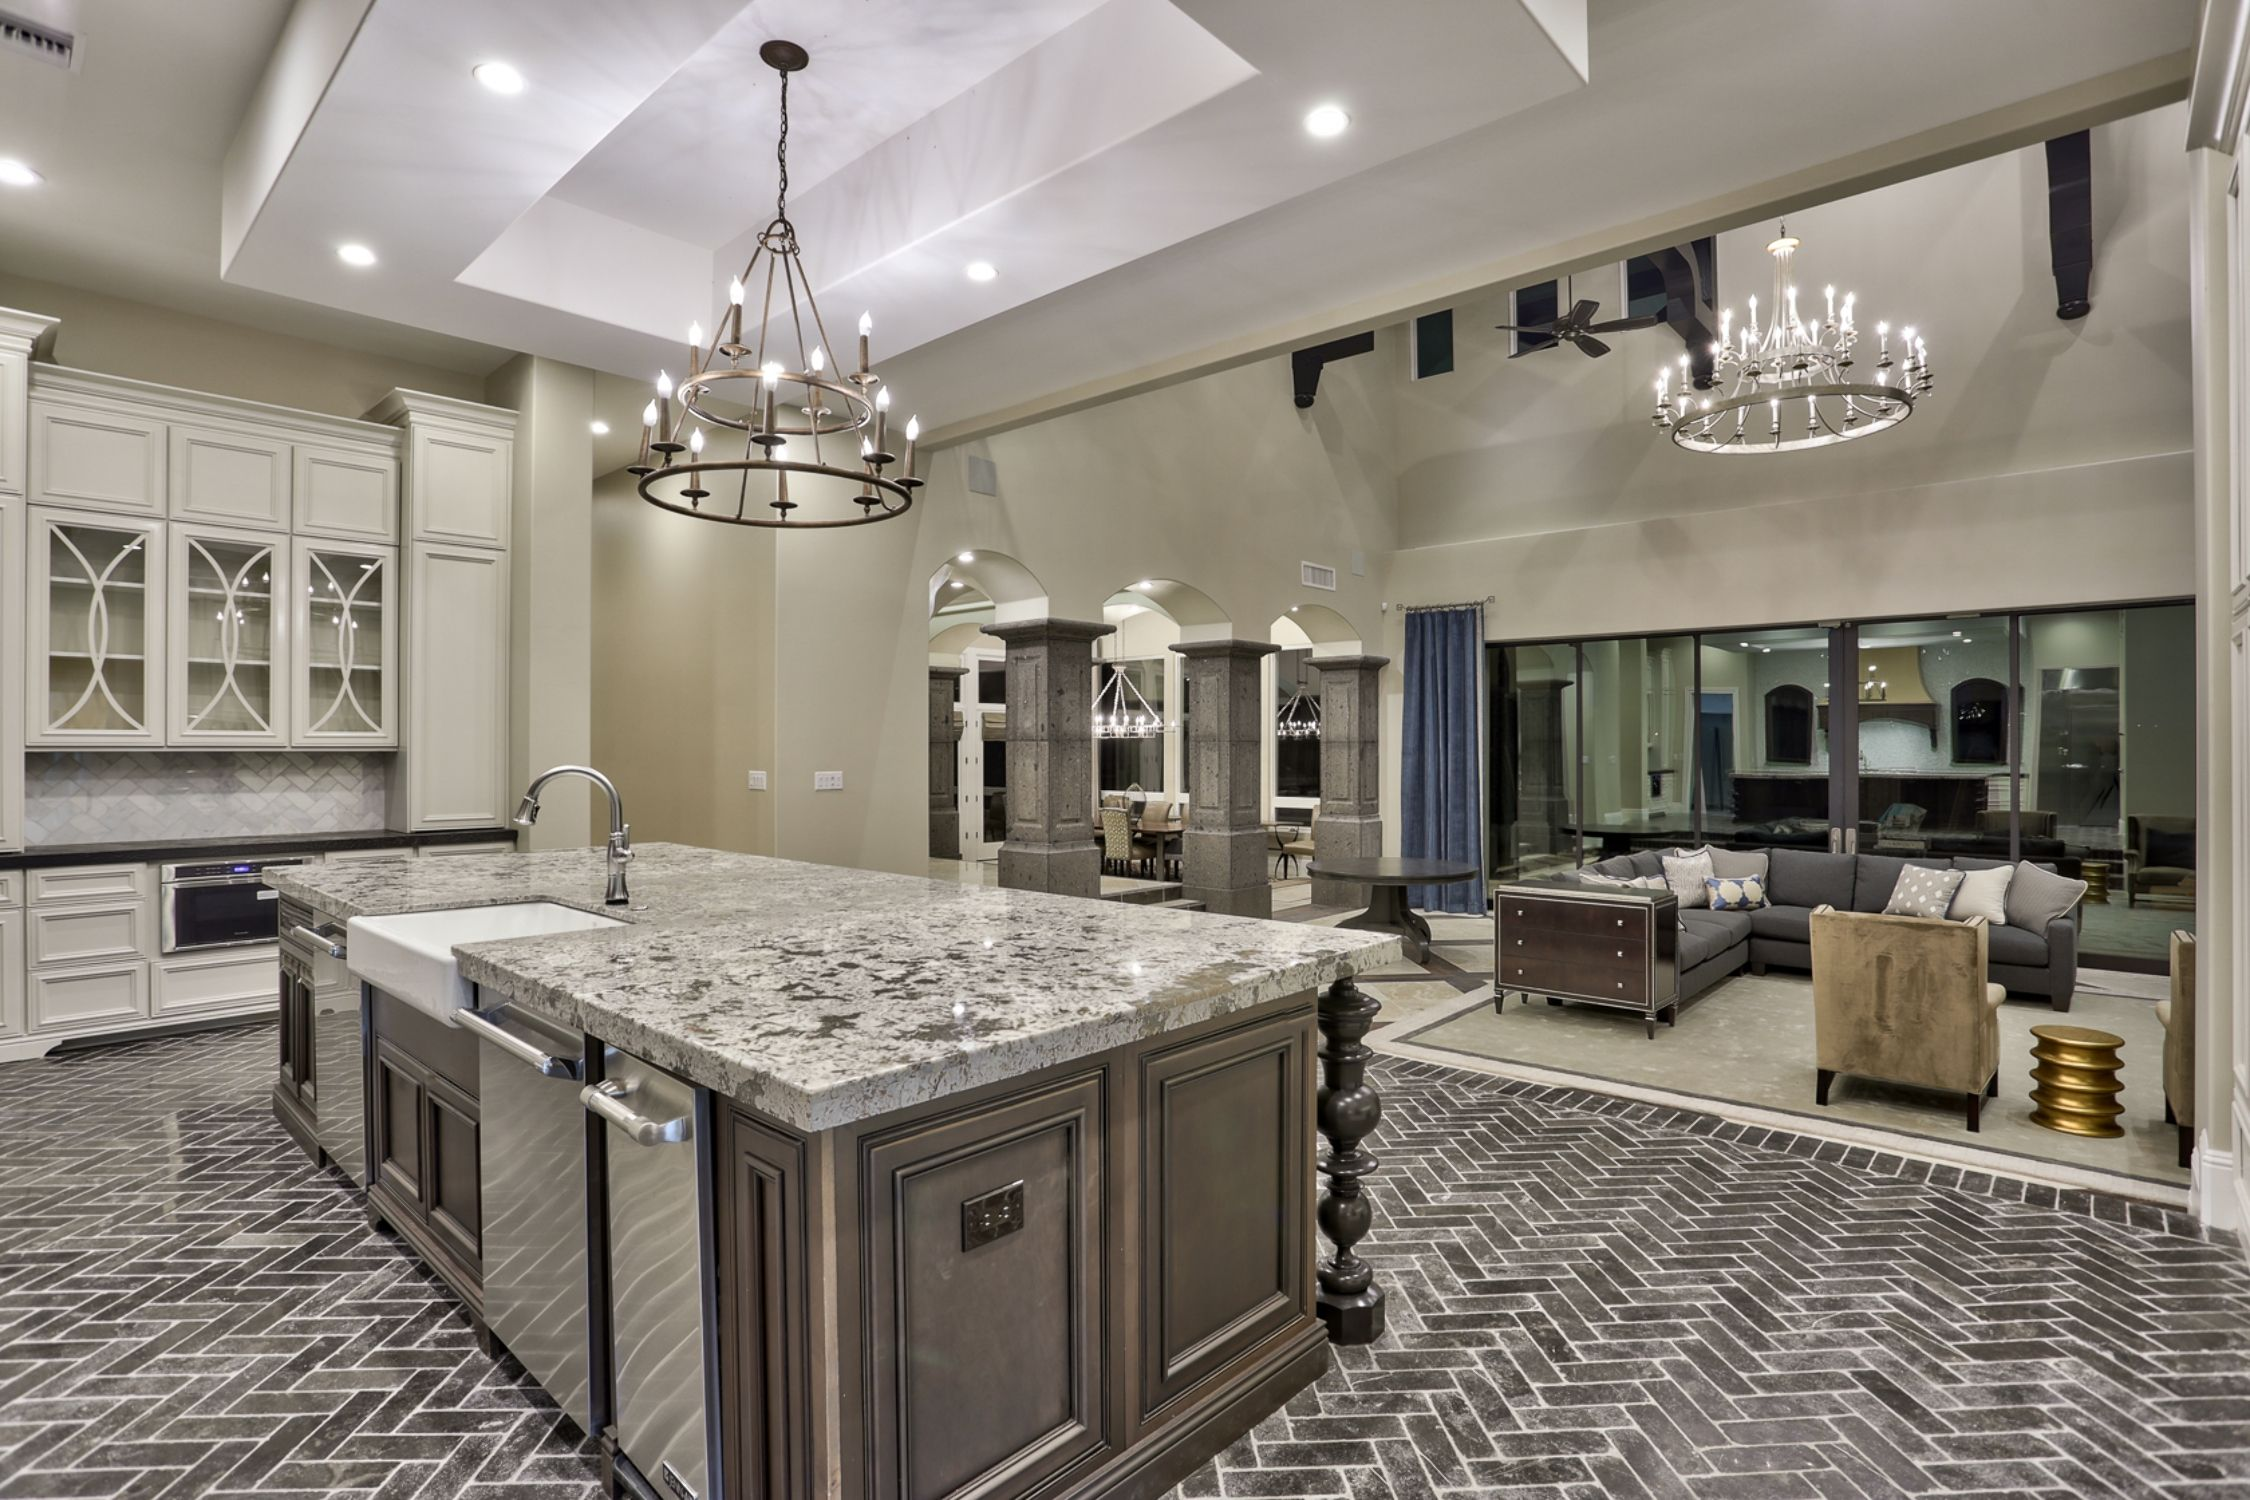 Transitional Home Design   Gourmet Kitchen   Steps Down Into The Great Room  Architectural Design: